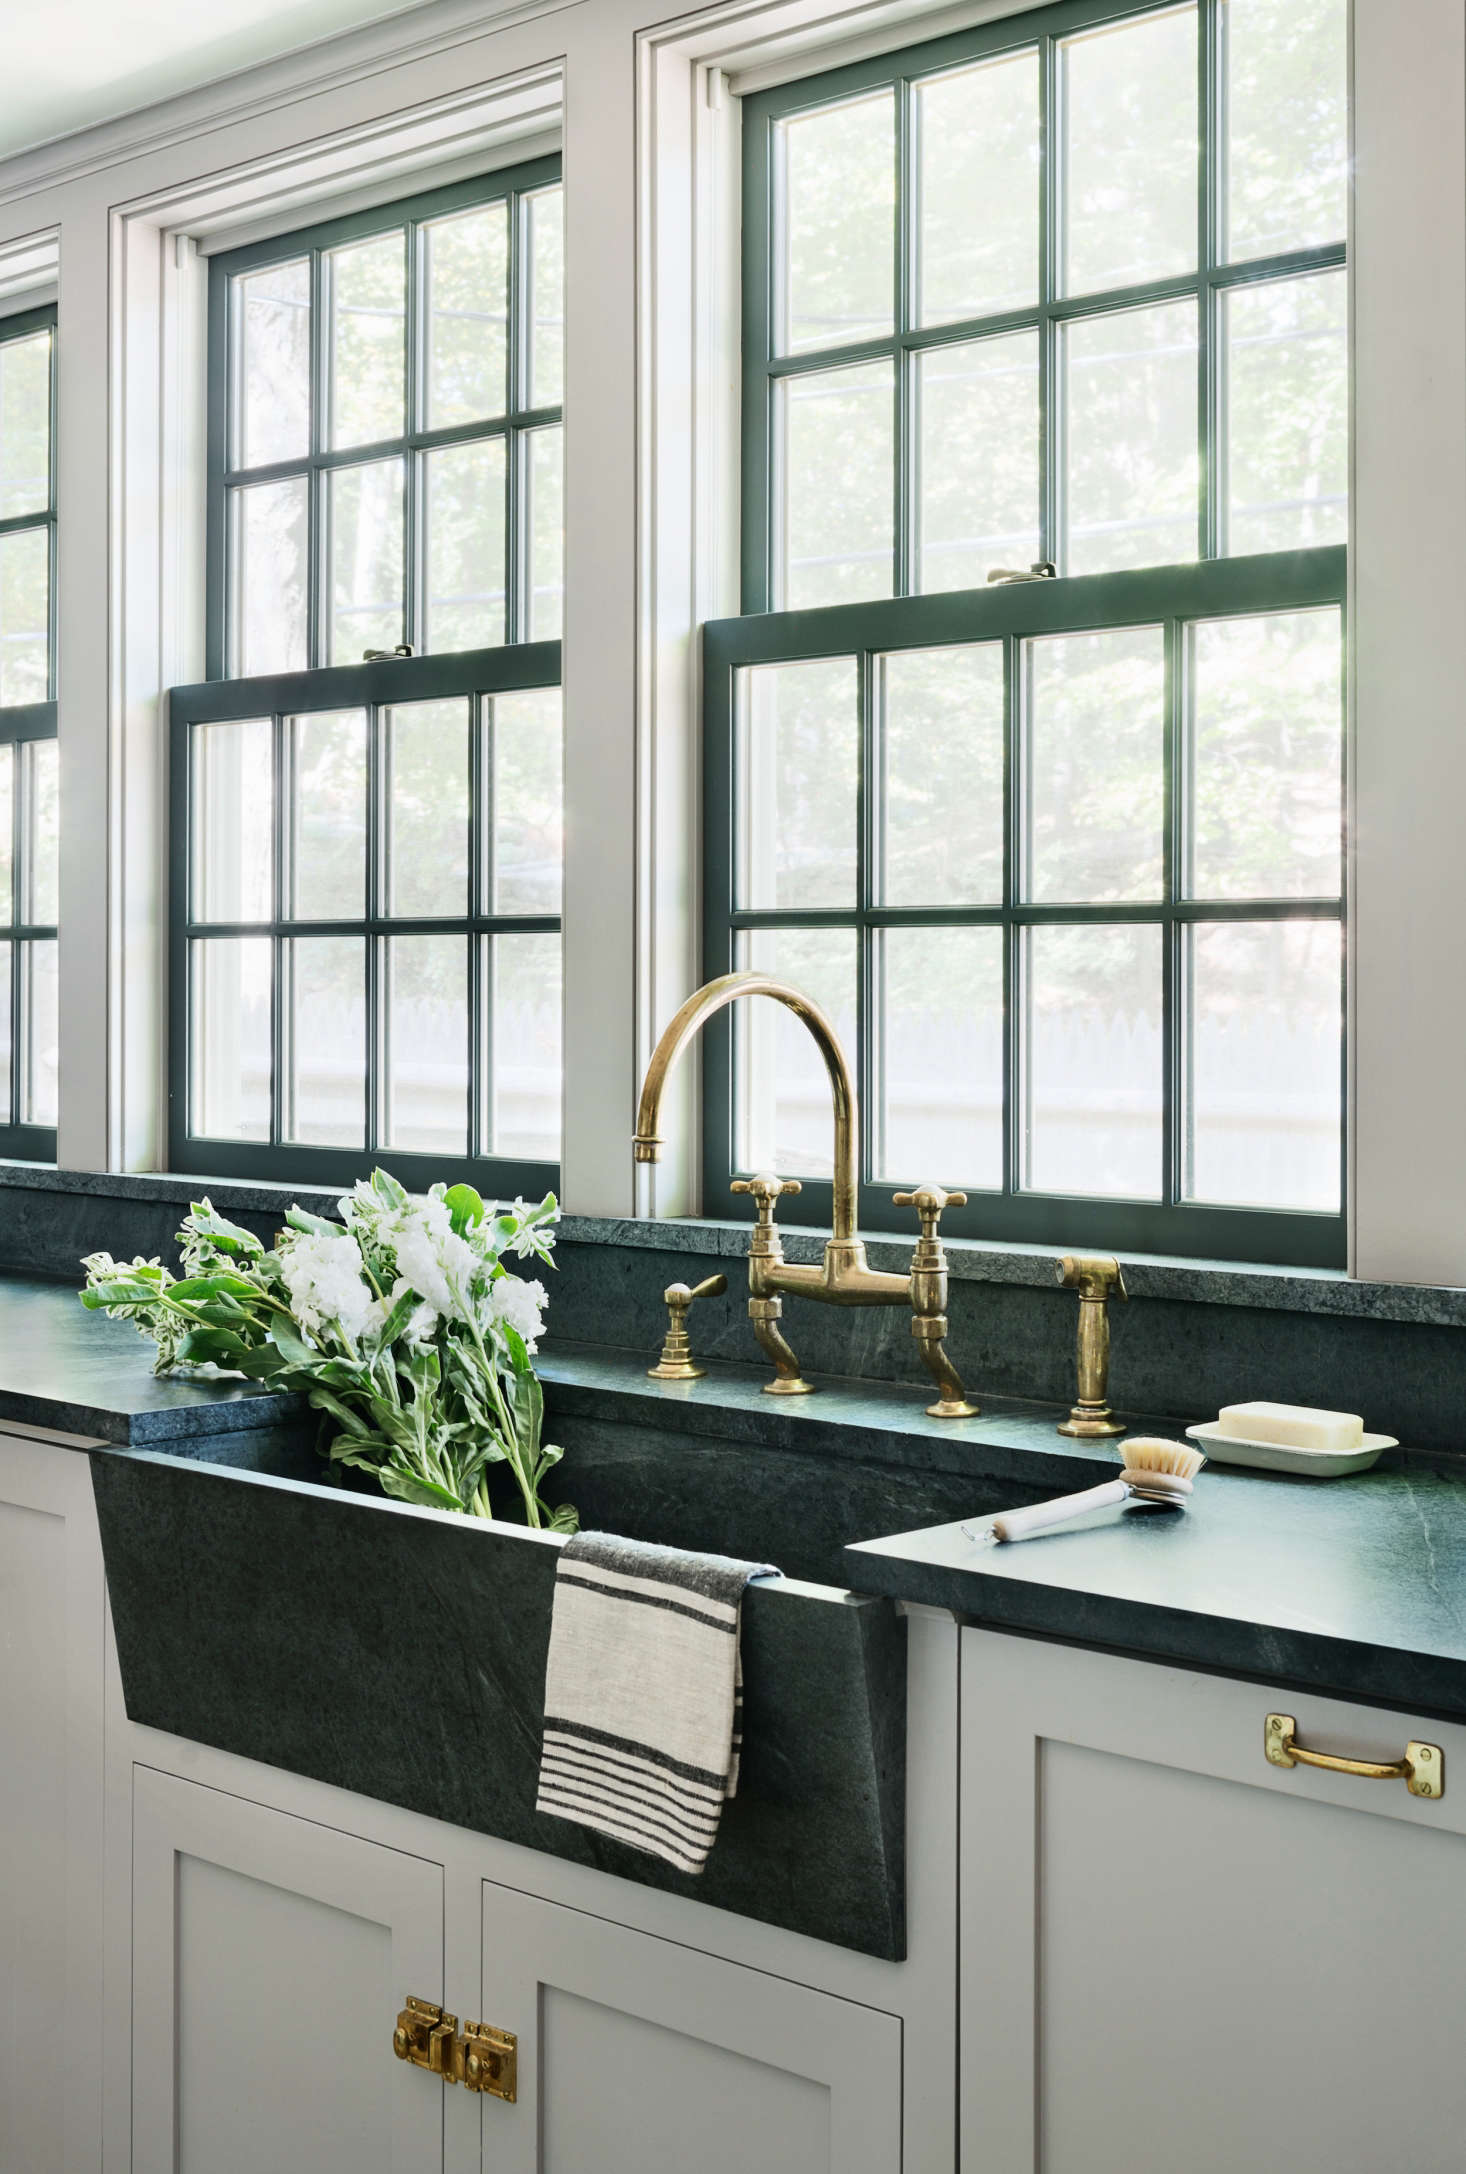 modern-farmhouse-renovation-with-soapstone-counters-integrated-apron-sink